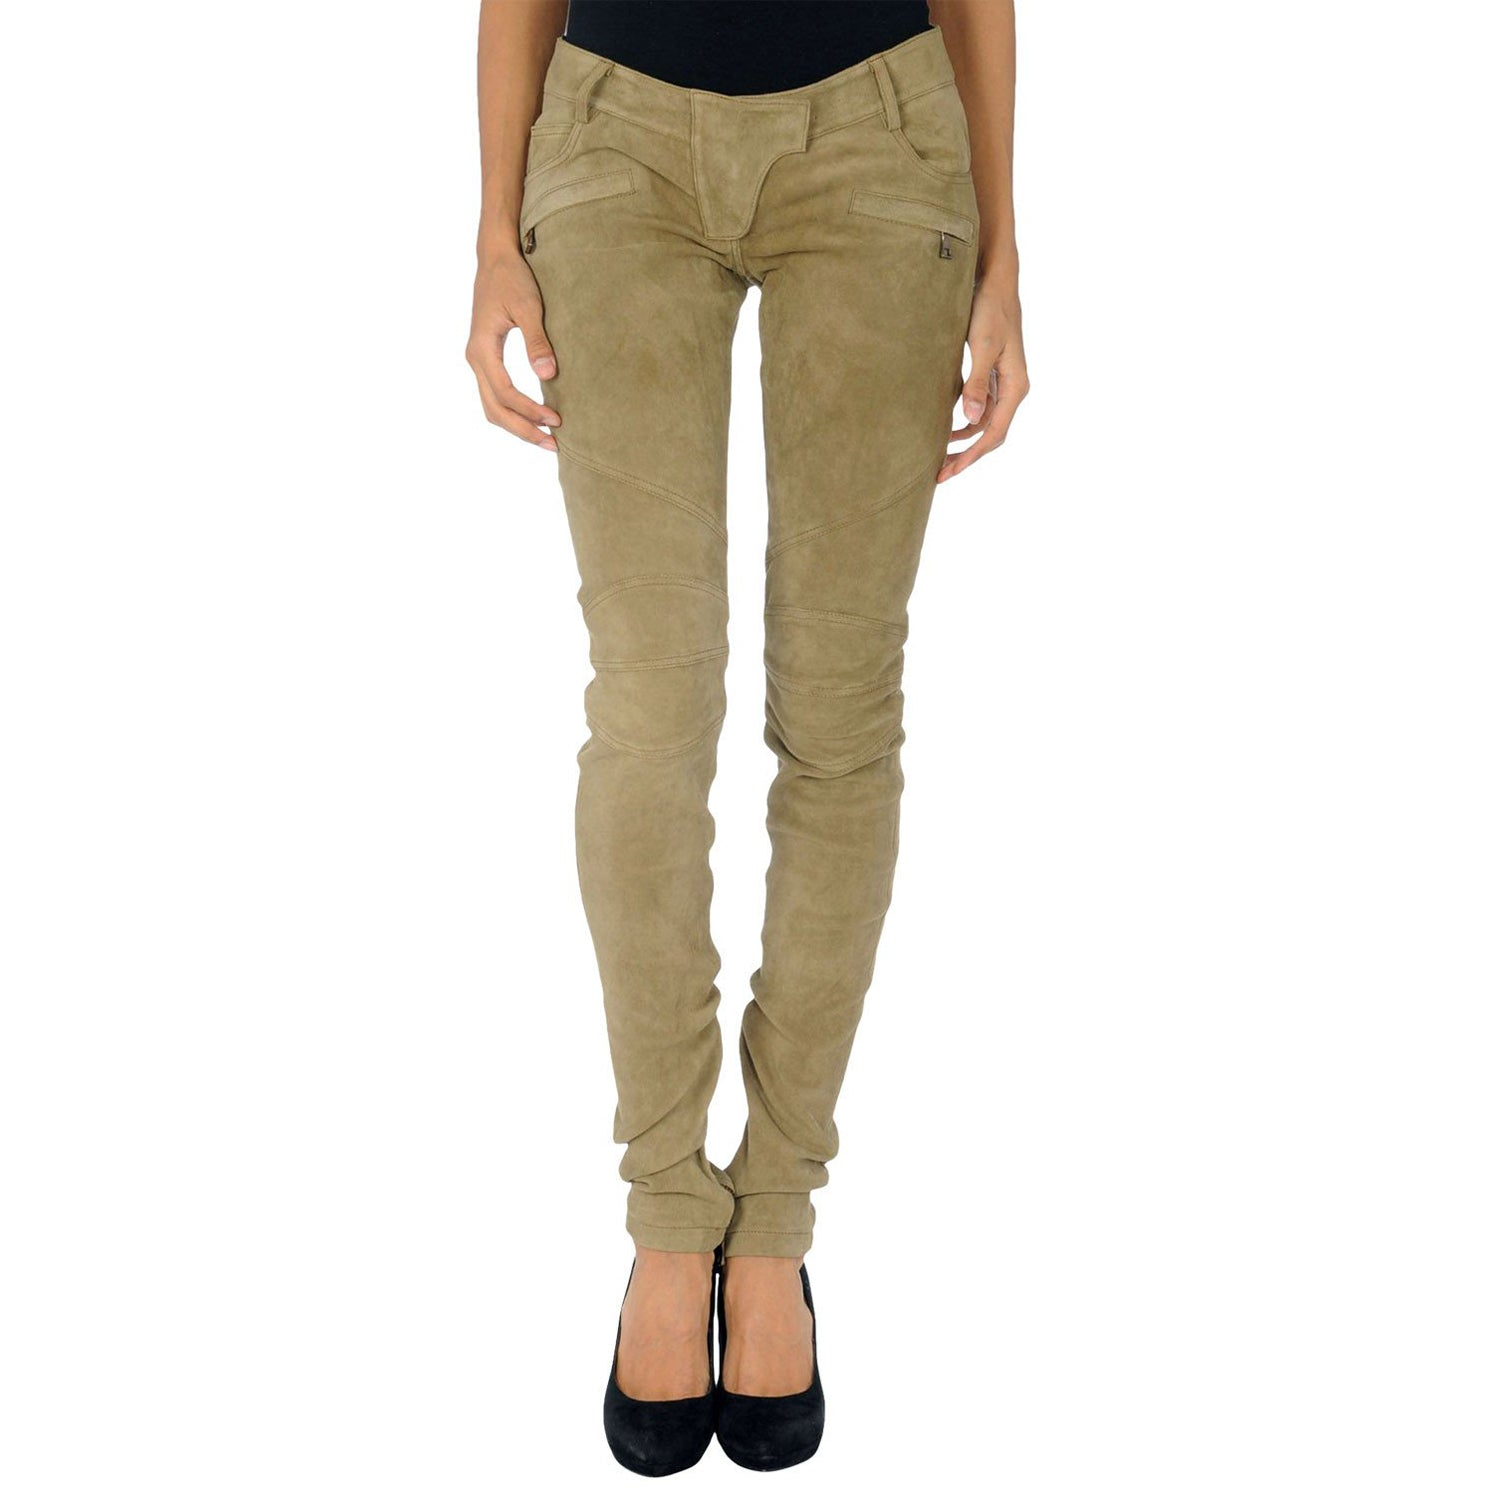 Beige Suede leather pants - Lusso Leather - 1